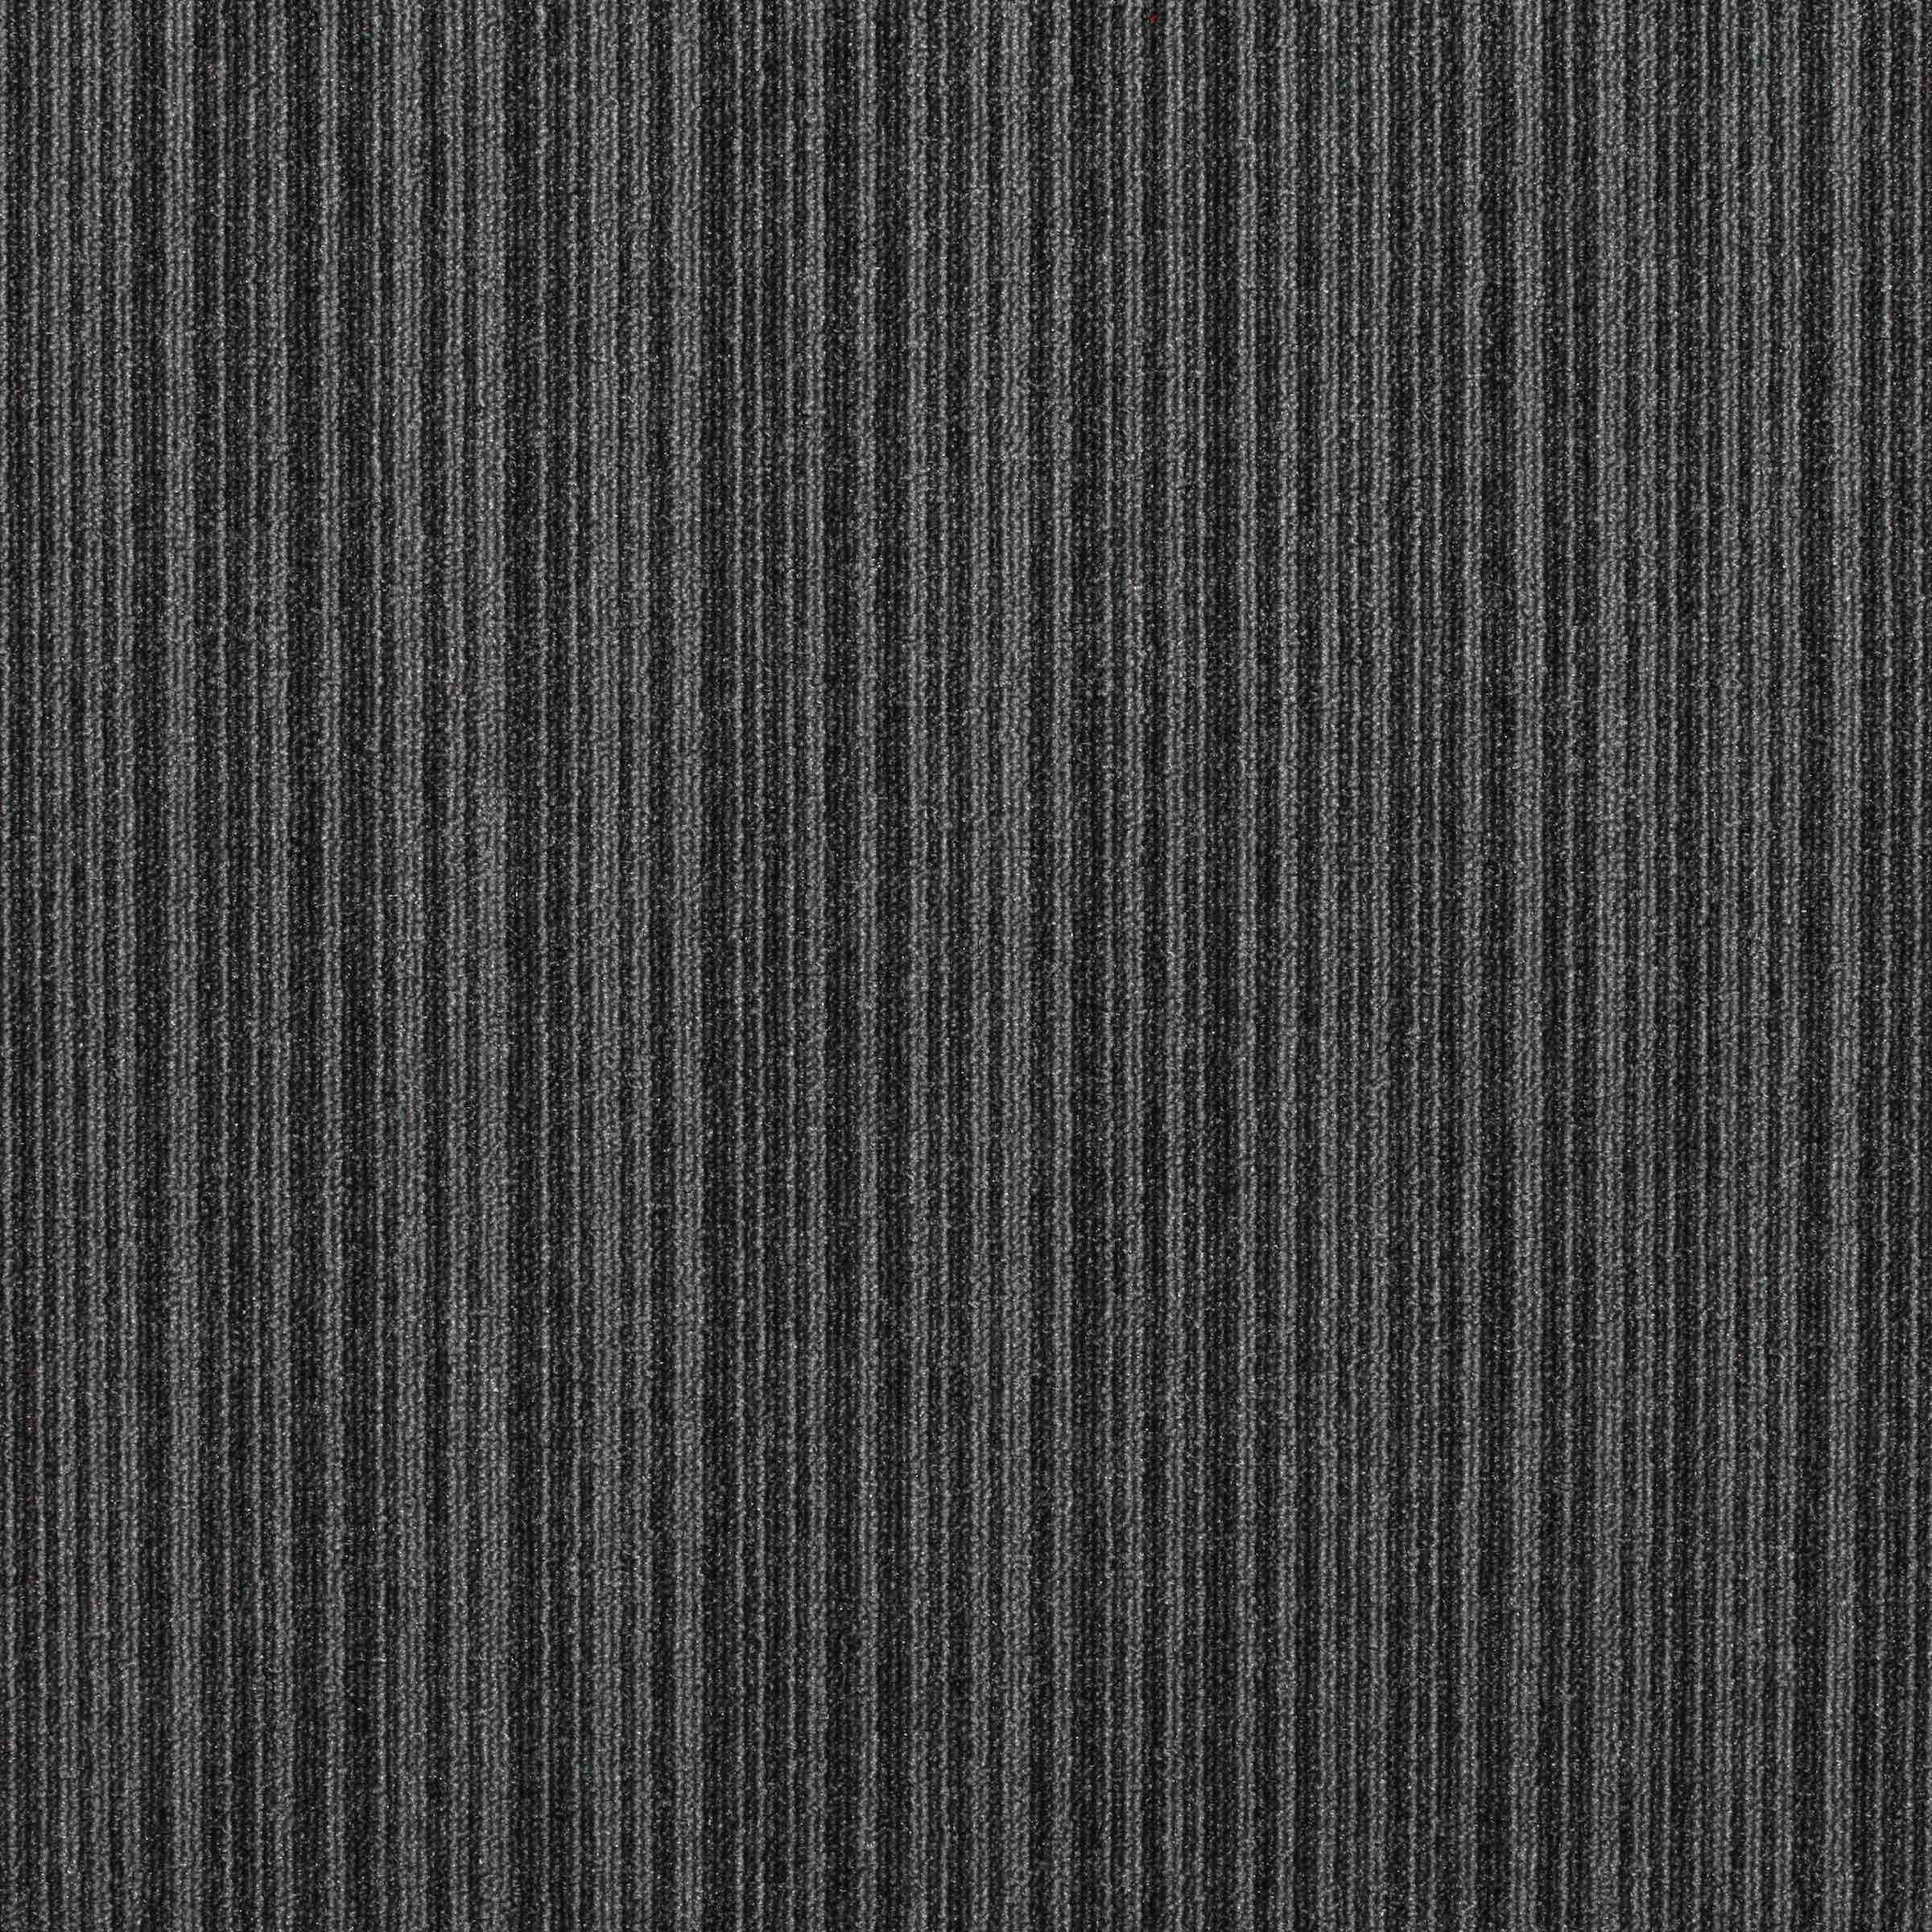 Codec | Axis, 8181 | Paragon Carpet Tiles | Commercial Carpet Tiles